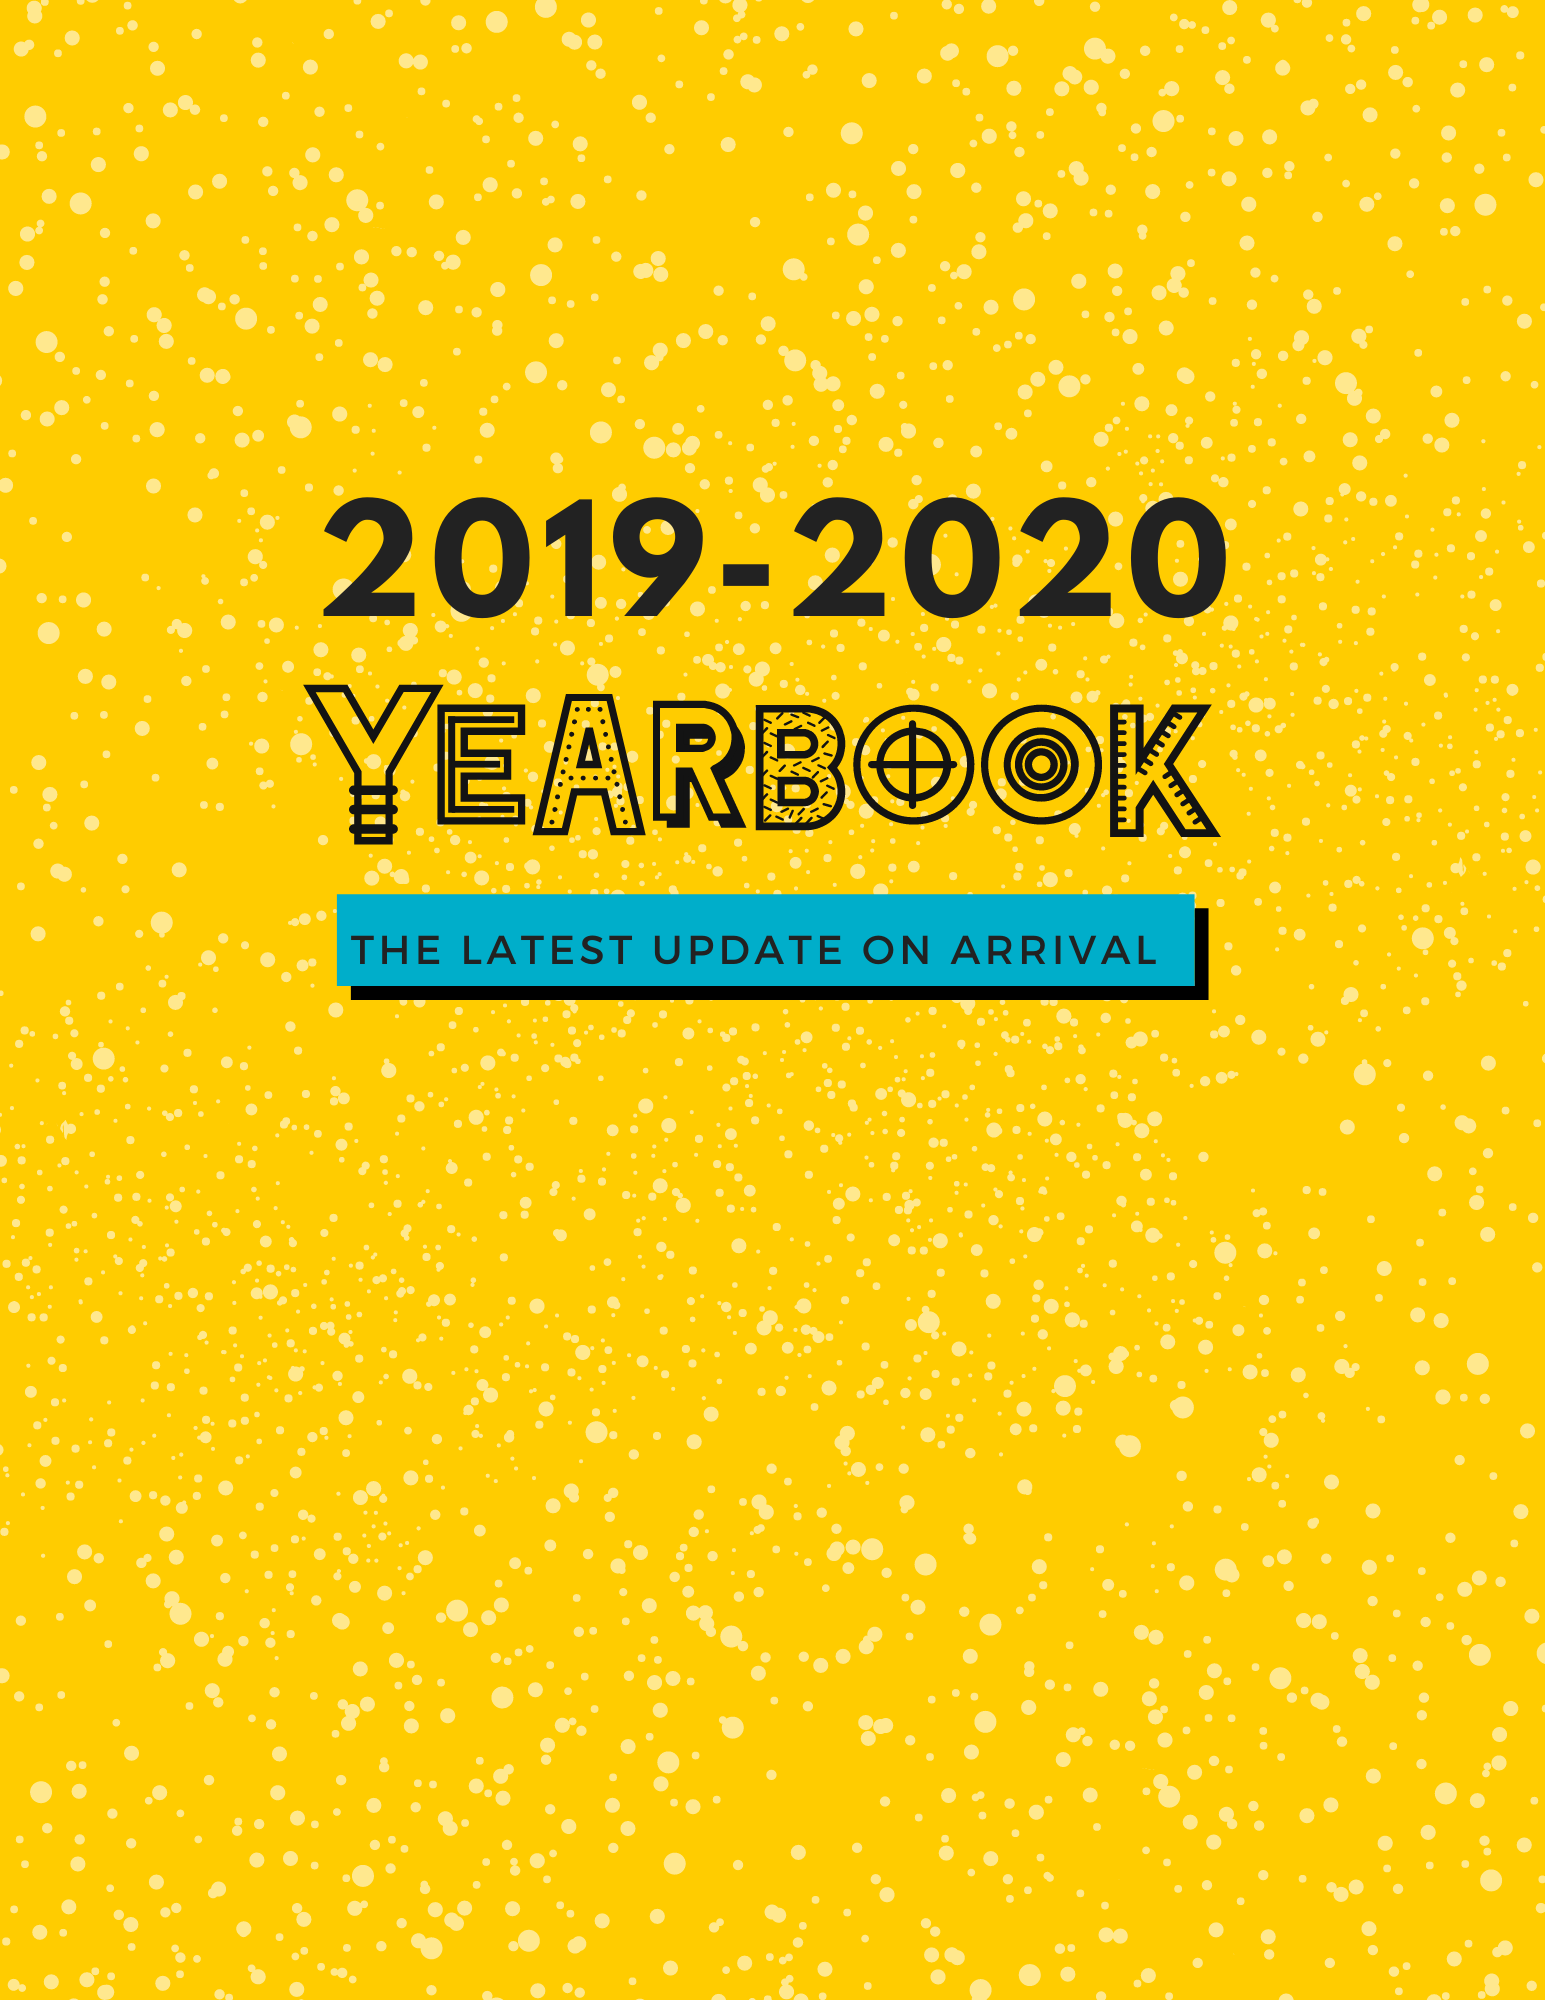 2019-2020 Yearbook Update